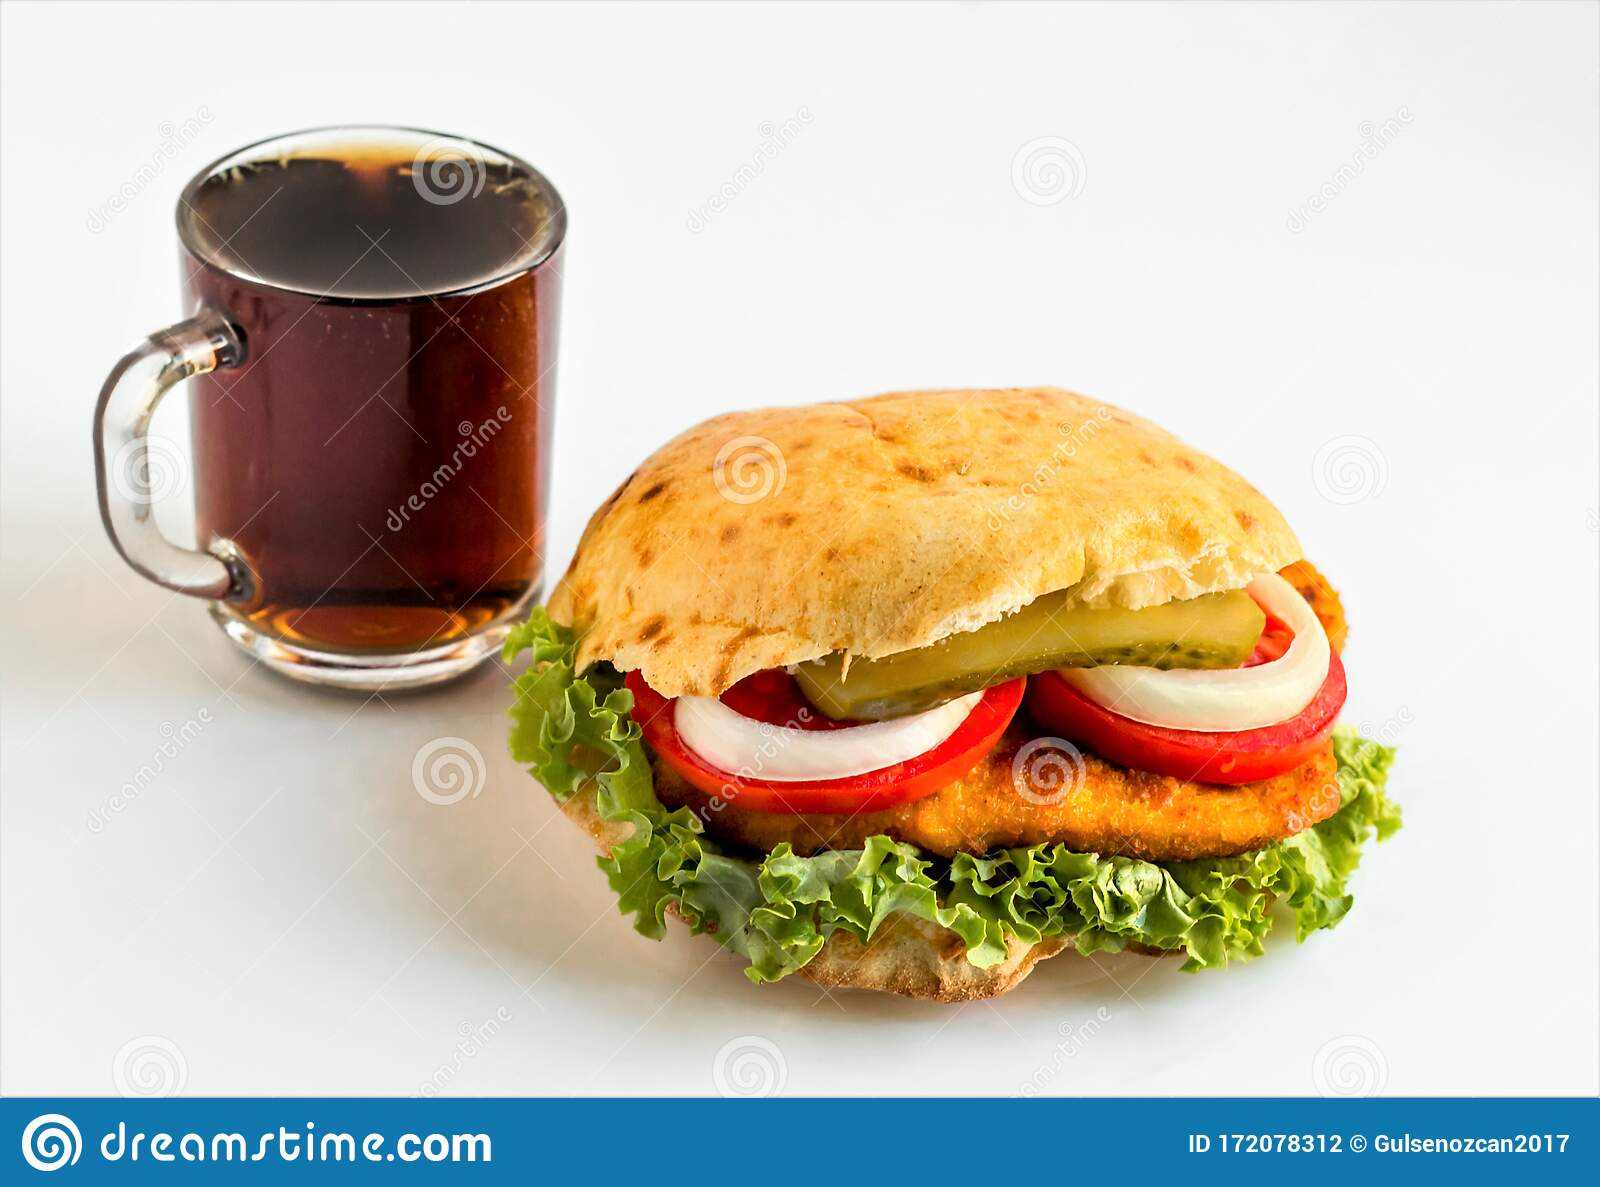 Fried Chicken Schnitzel Burger With Tomato Lettuce Leaf Stock Photo Image Of Culture Delicious 172078312